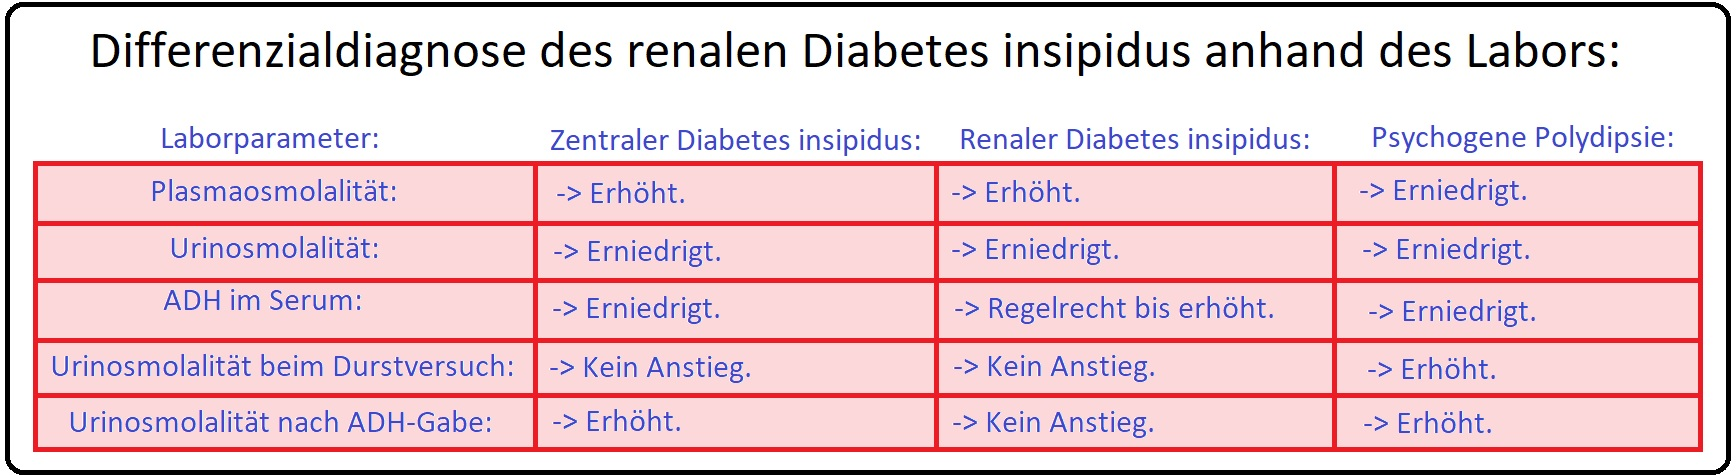 861 Differenzialdiagnose des renalen Diabetes insipidus anhand des Labors